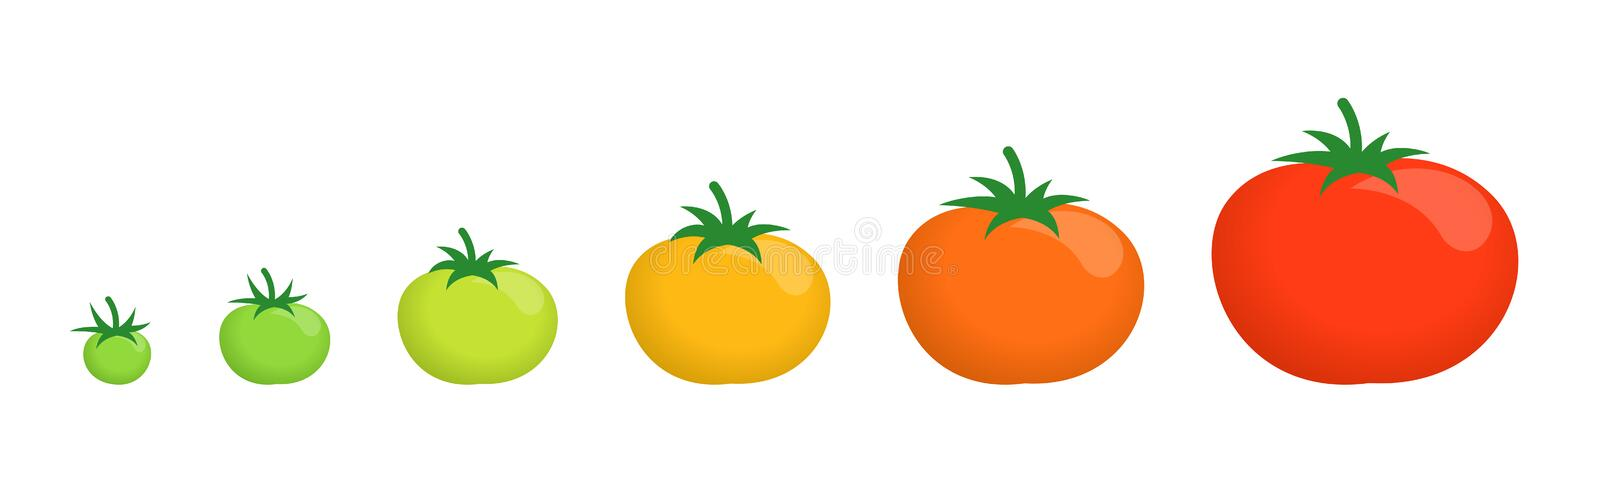 Tomato ripeness stages. Harvesting and ripening tomatoes. Vegetable set plant. How to ripen green tomat. Ripening period. And harvest. Animation development stock illustration